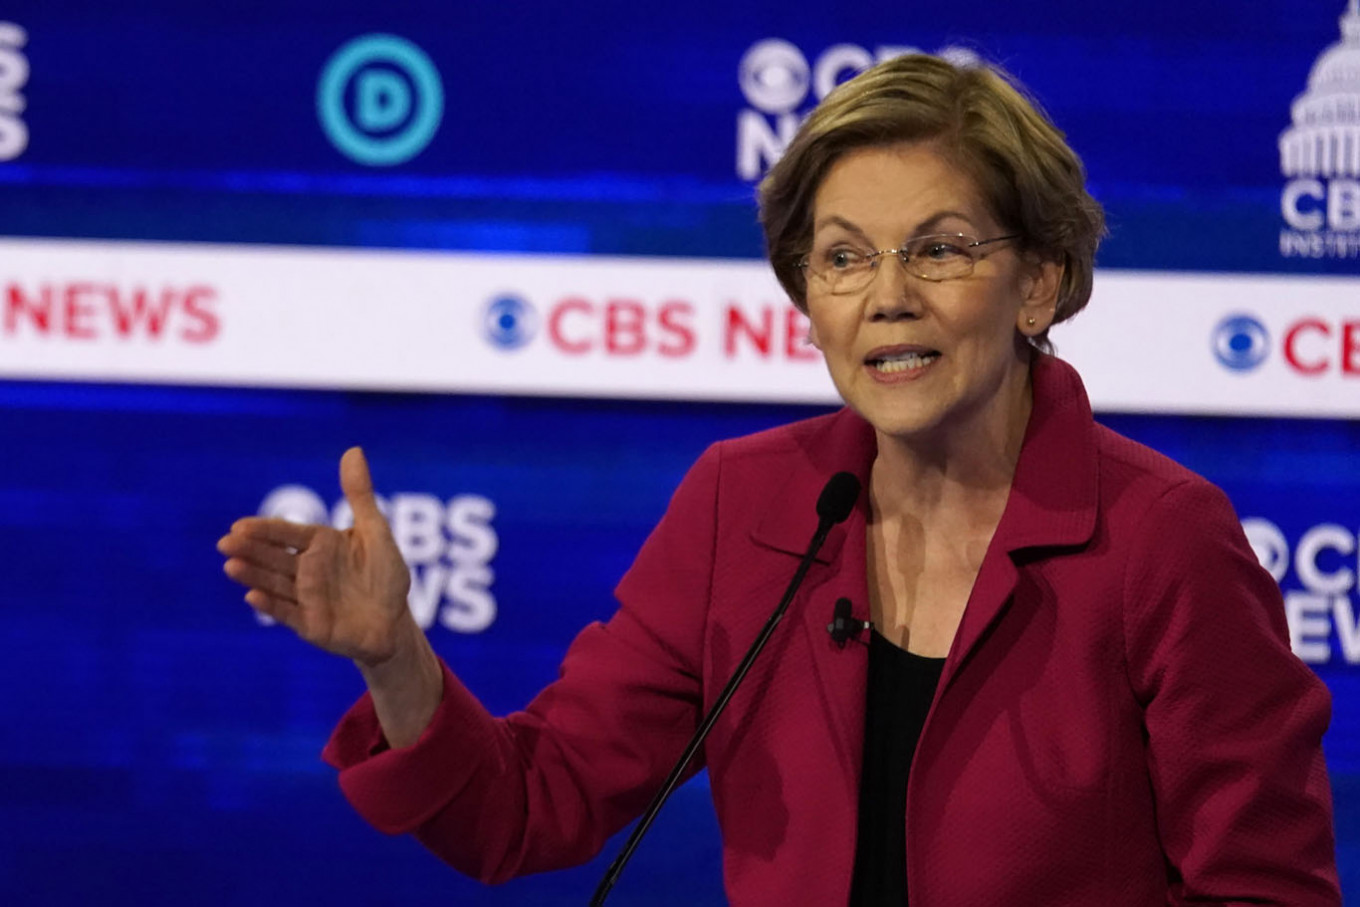 18 contests, 0 wins: Warren's White House bid misfires